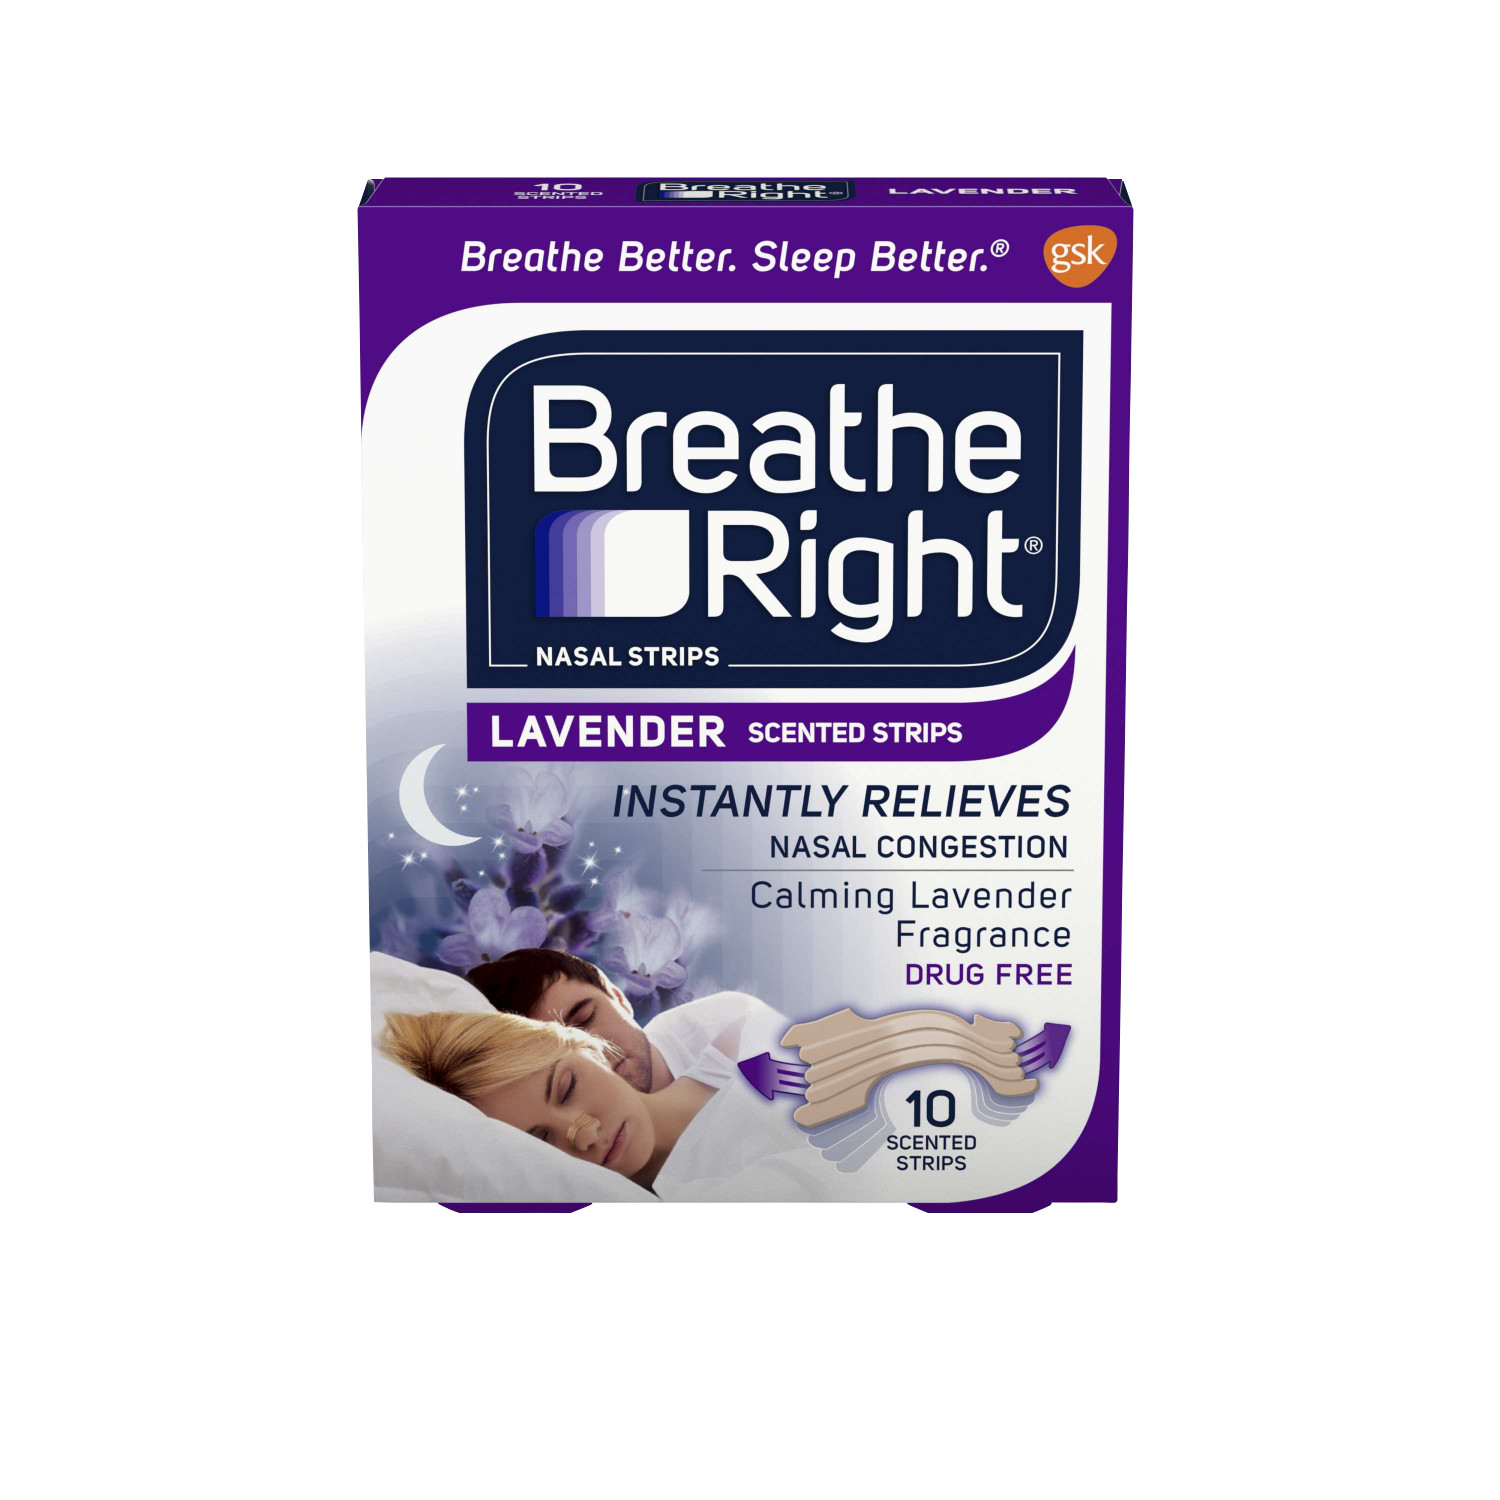 Breathe Right Calming Lavender Scented Drug-Free Nasal Strips for Nasal Congestion Relief, 10 count